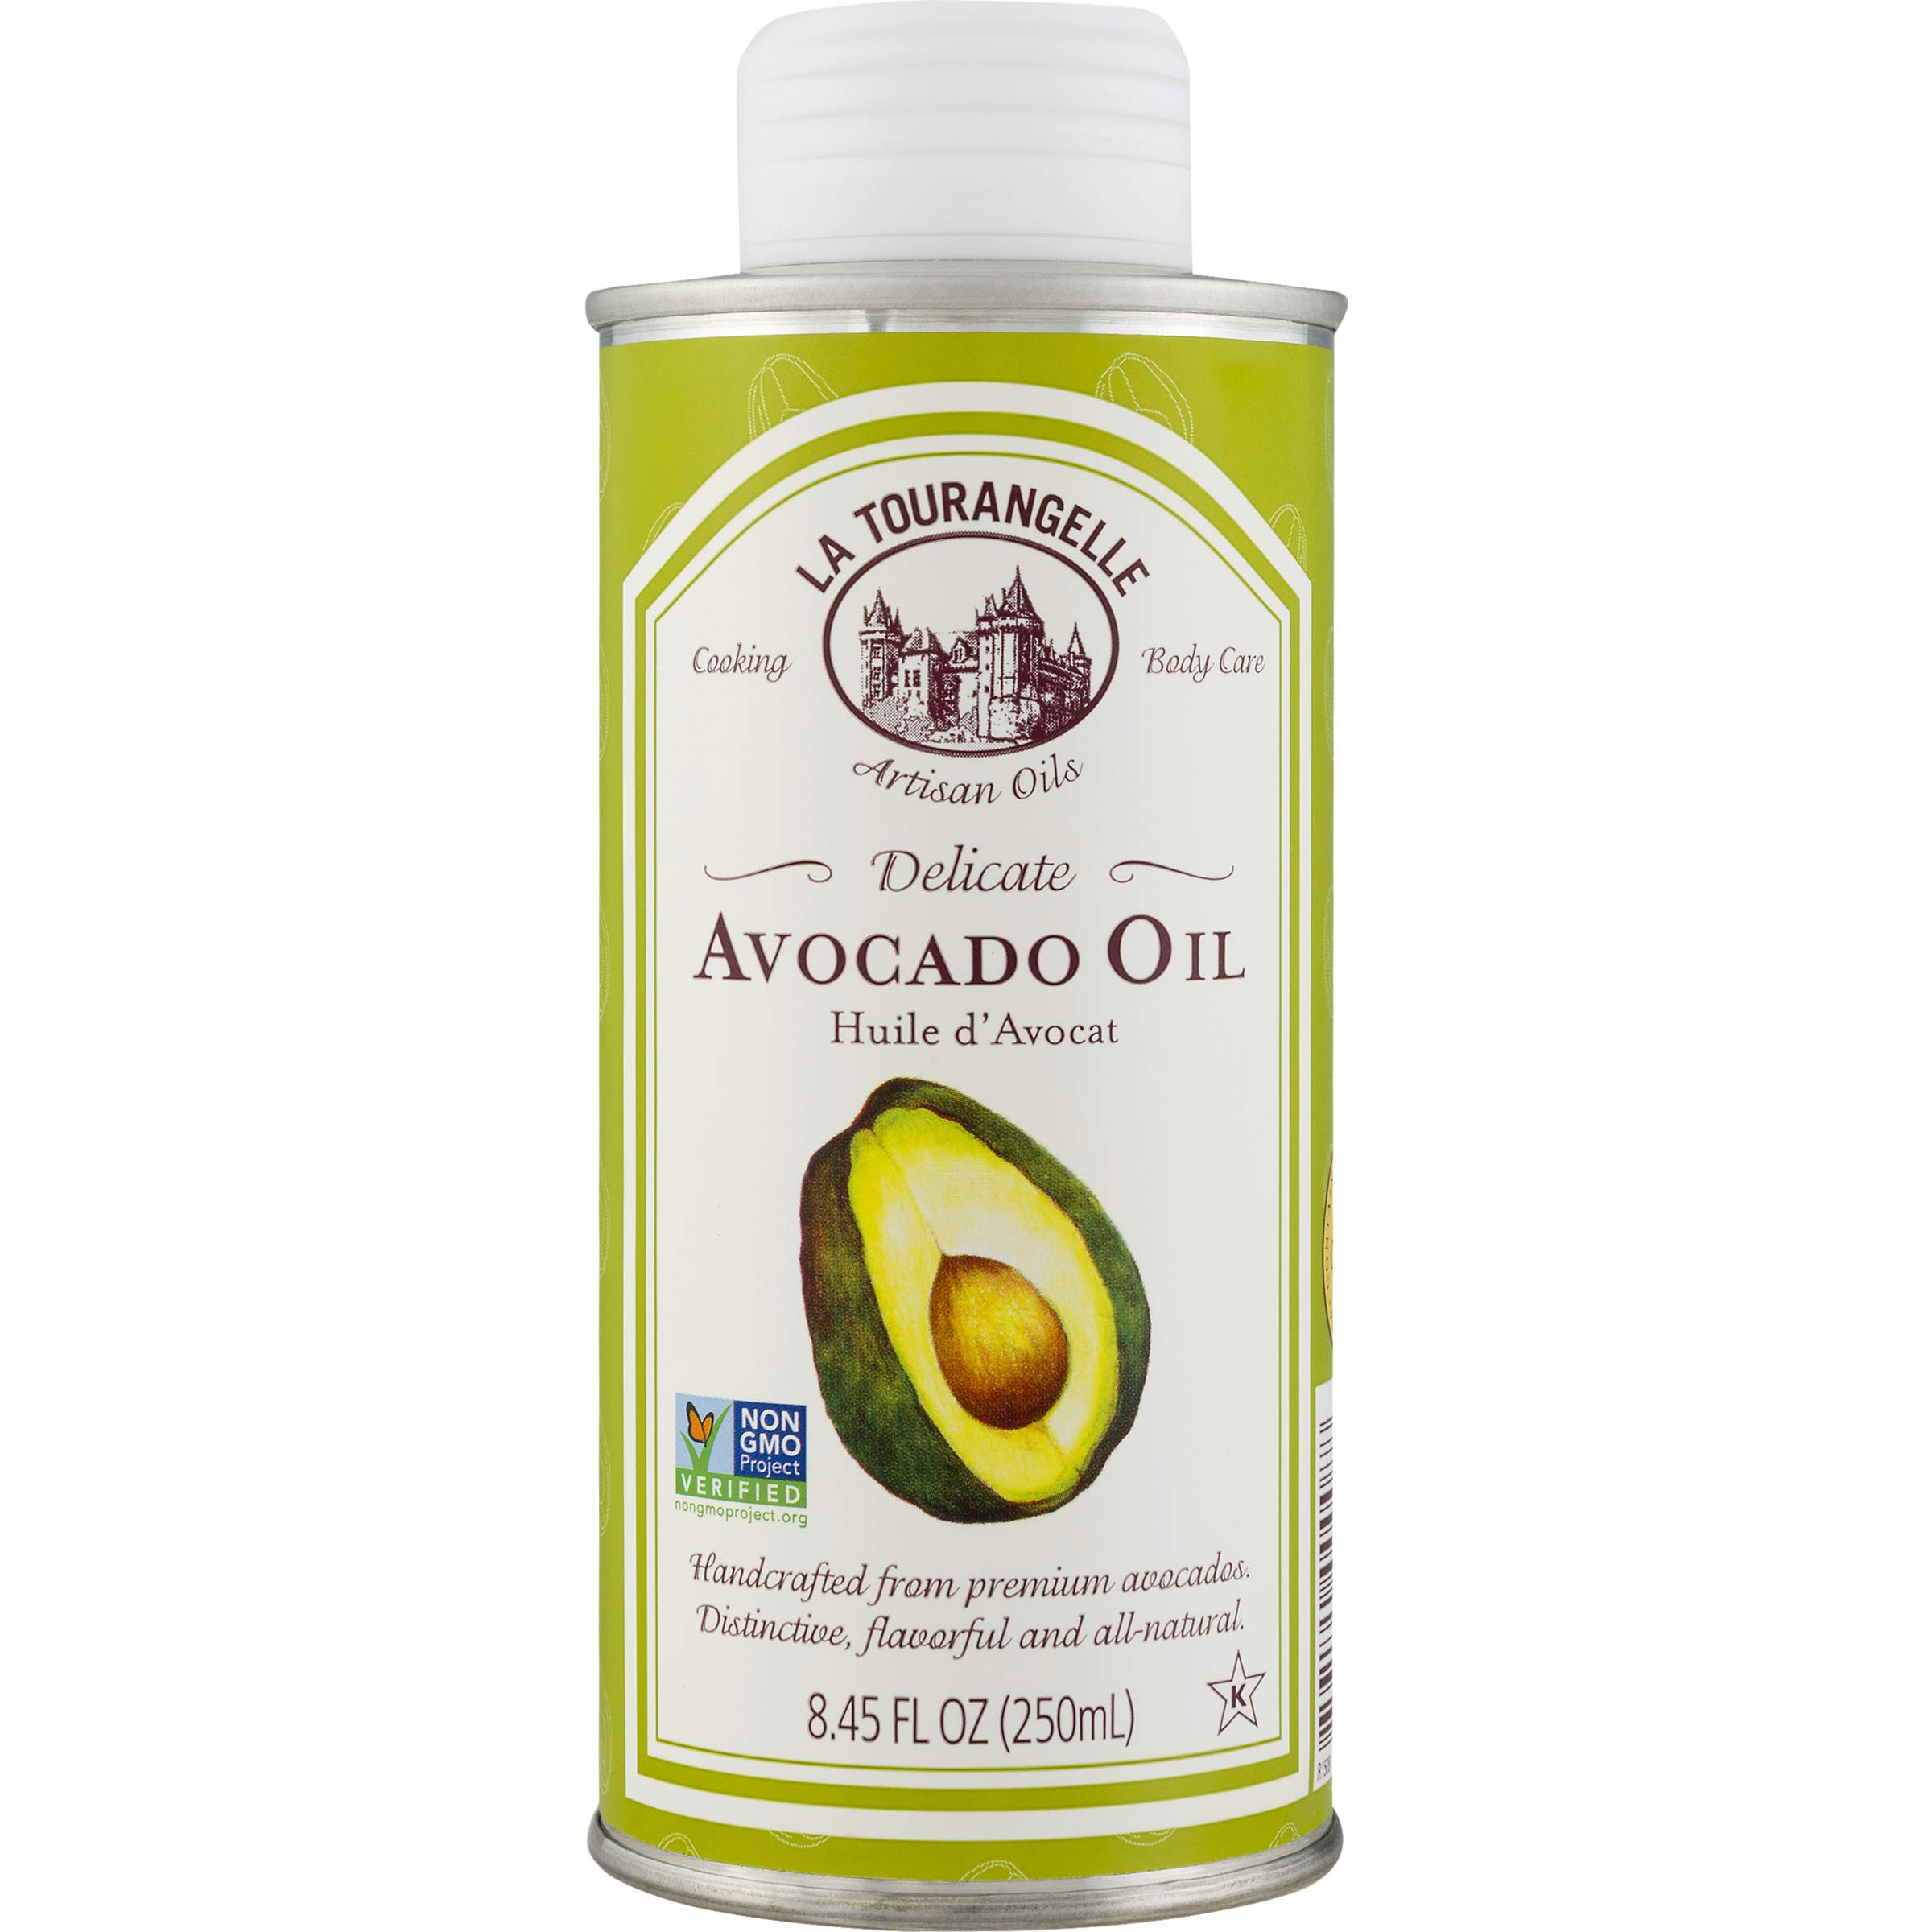 La Tourangelle Avocado Oil 8.45 Fl. Oz., All-Natural, Artisanal, Great for Salads, Fruit, Fish or Vegetables, Great Buttery Flavor